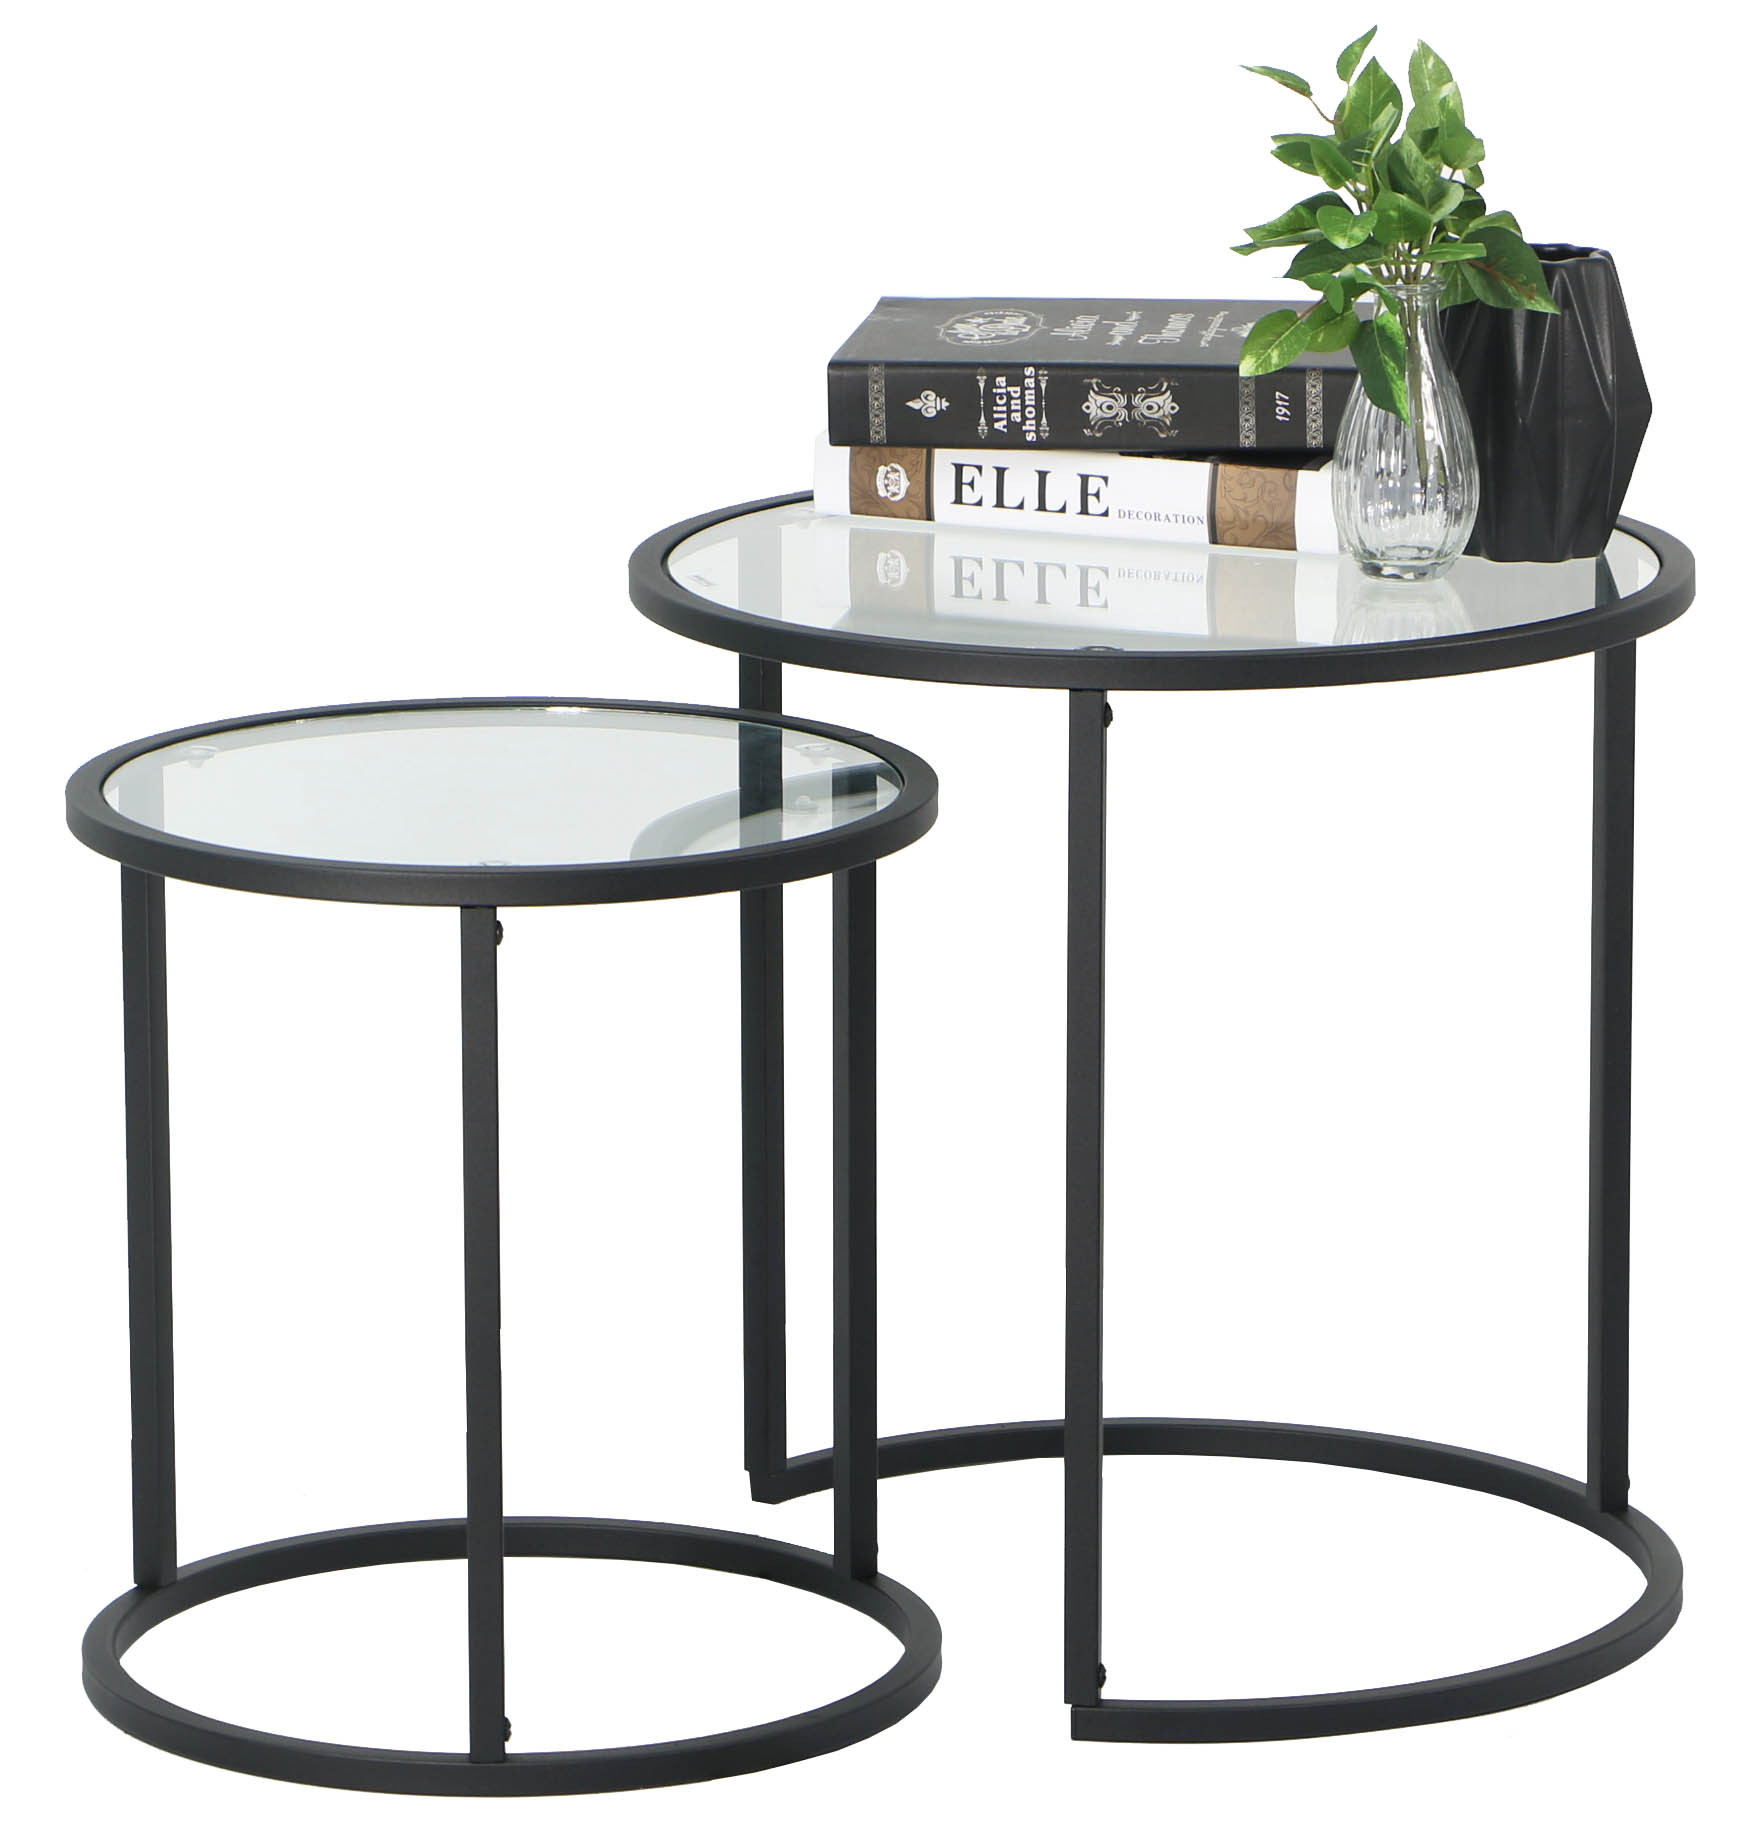 nesting furniture. Careri 2pcs Nesting Table Set Furniture